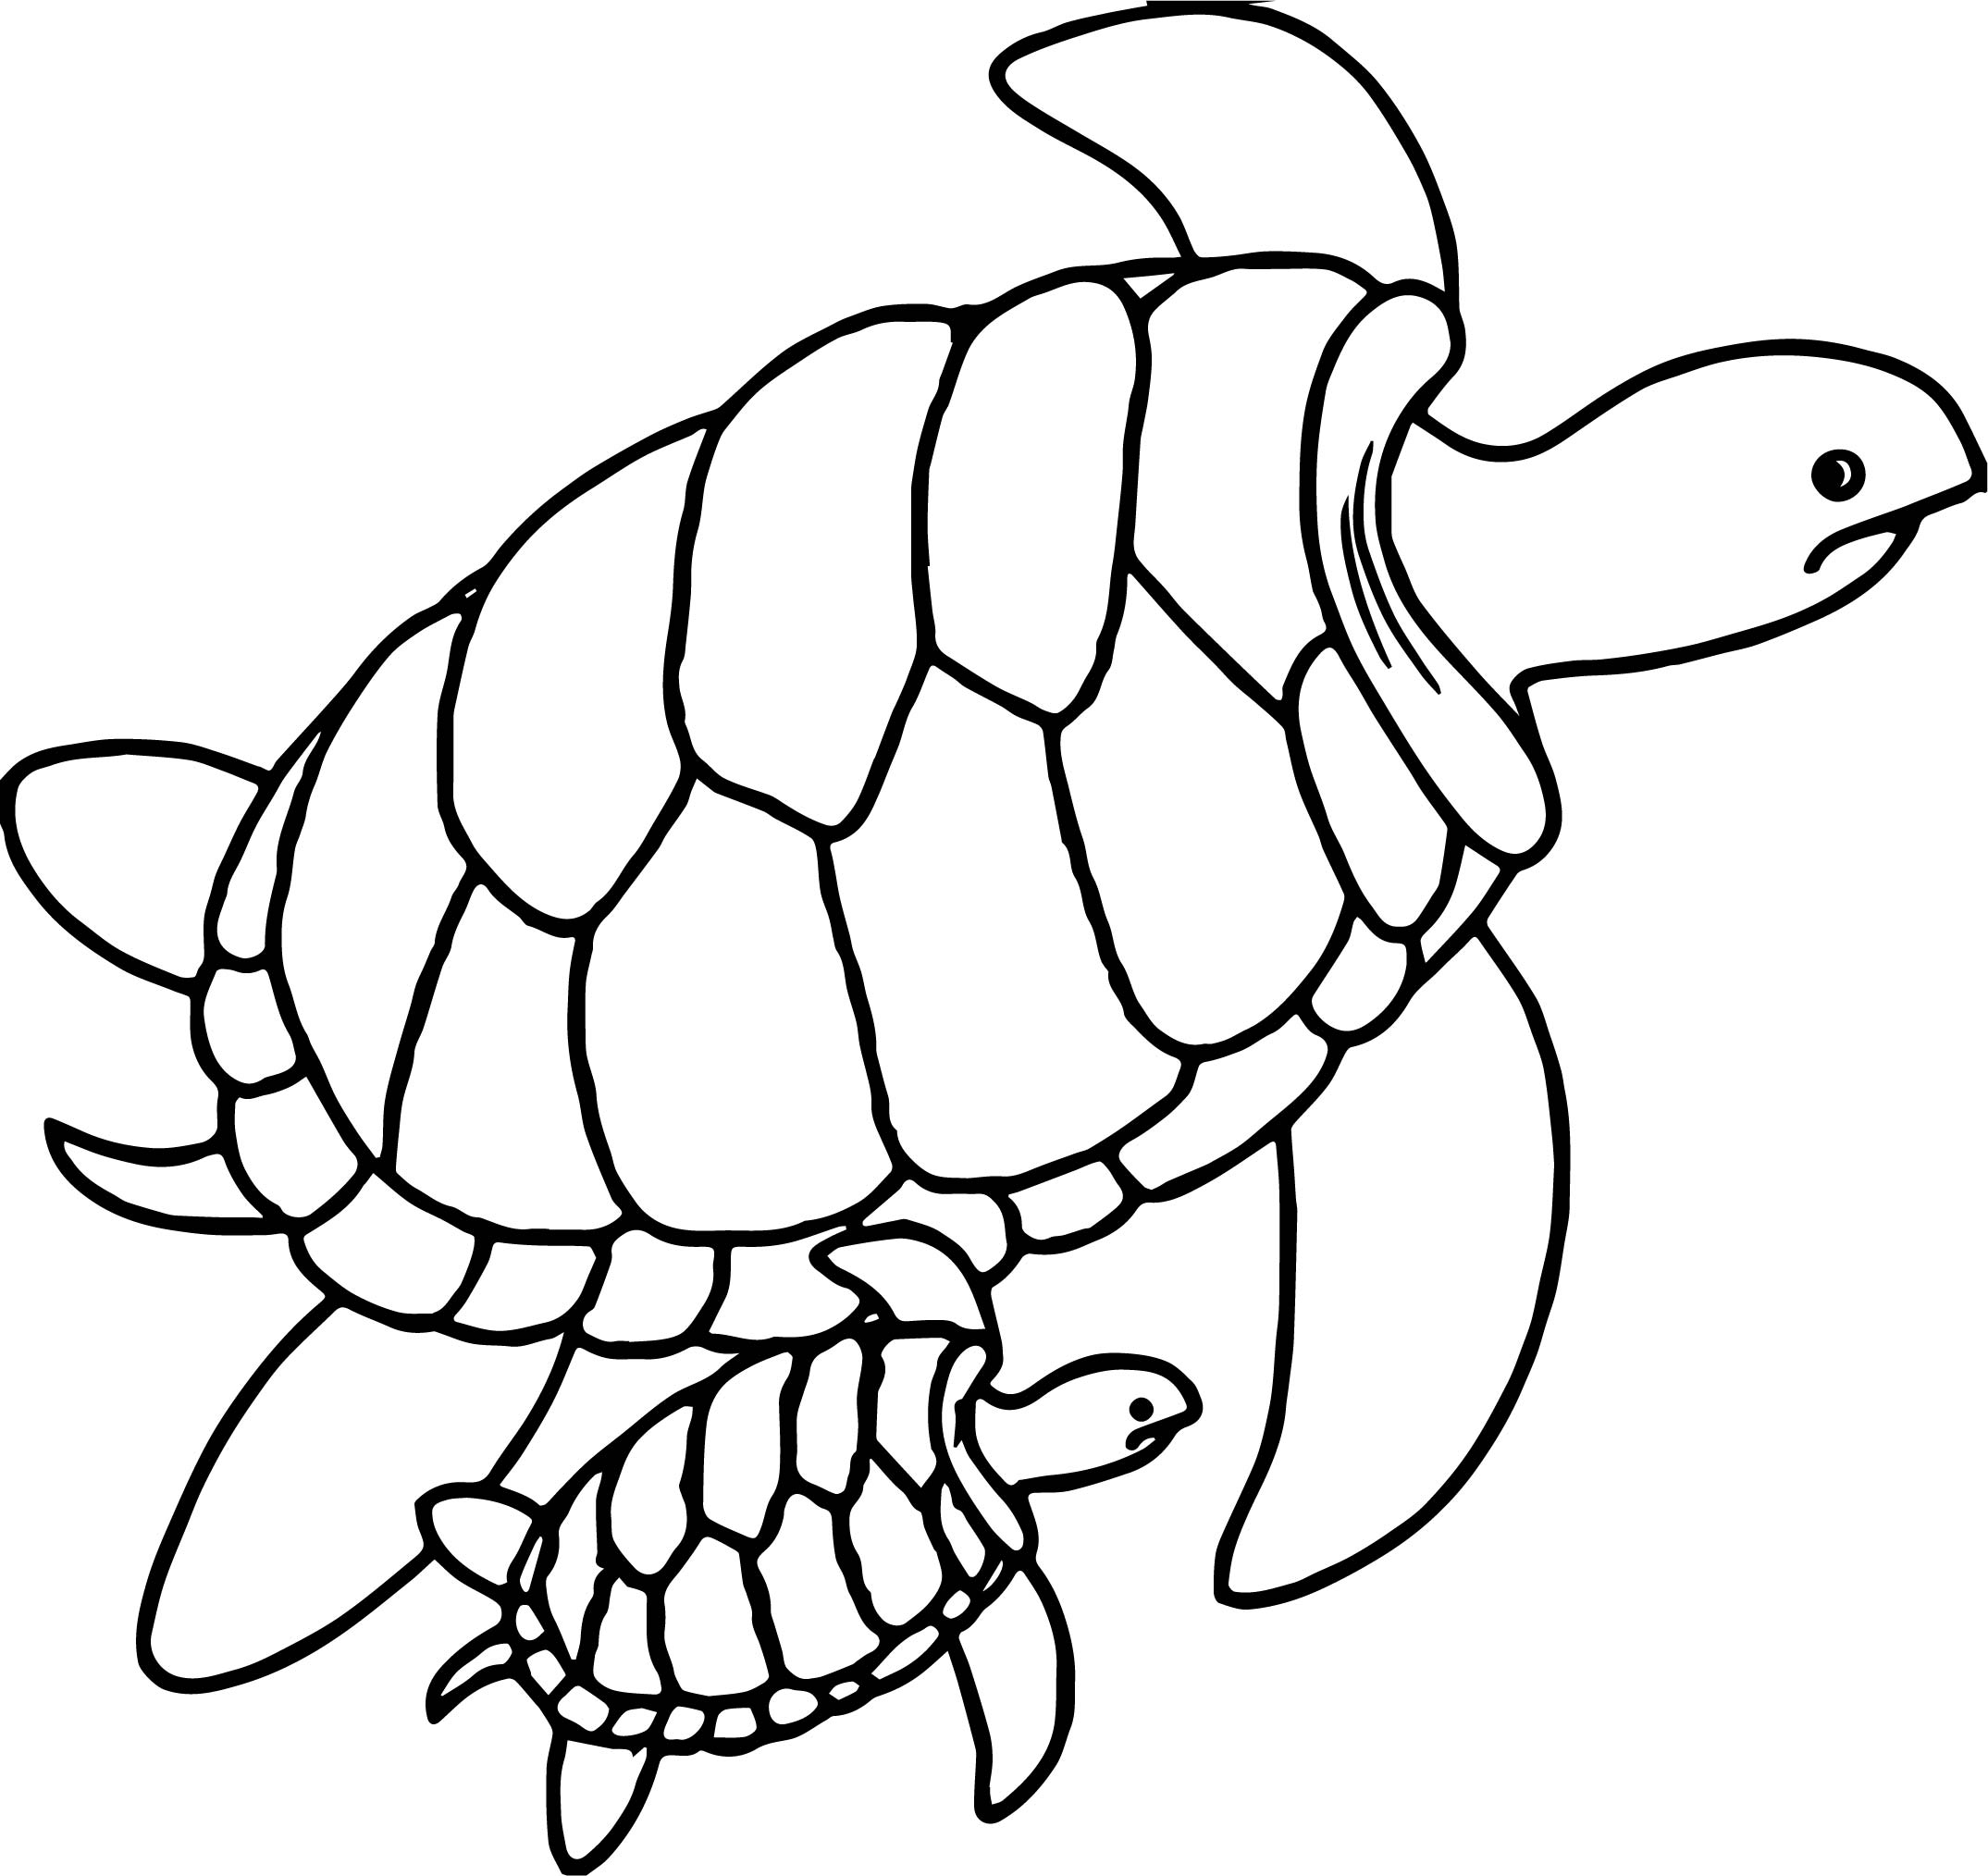 Drawn sea turtle underwate animal Swimming Sea Turtle Turtles Together